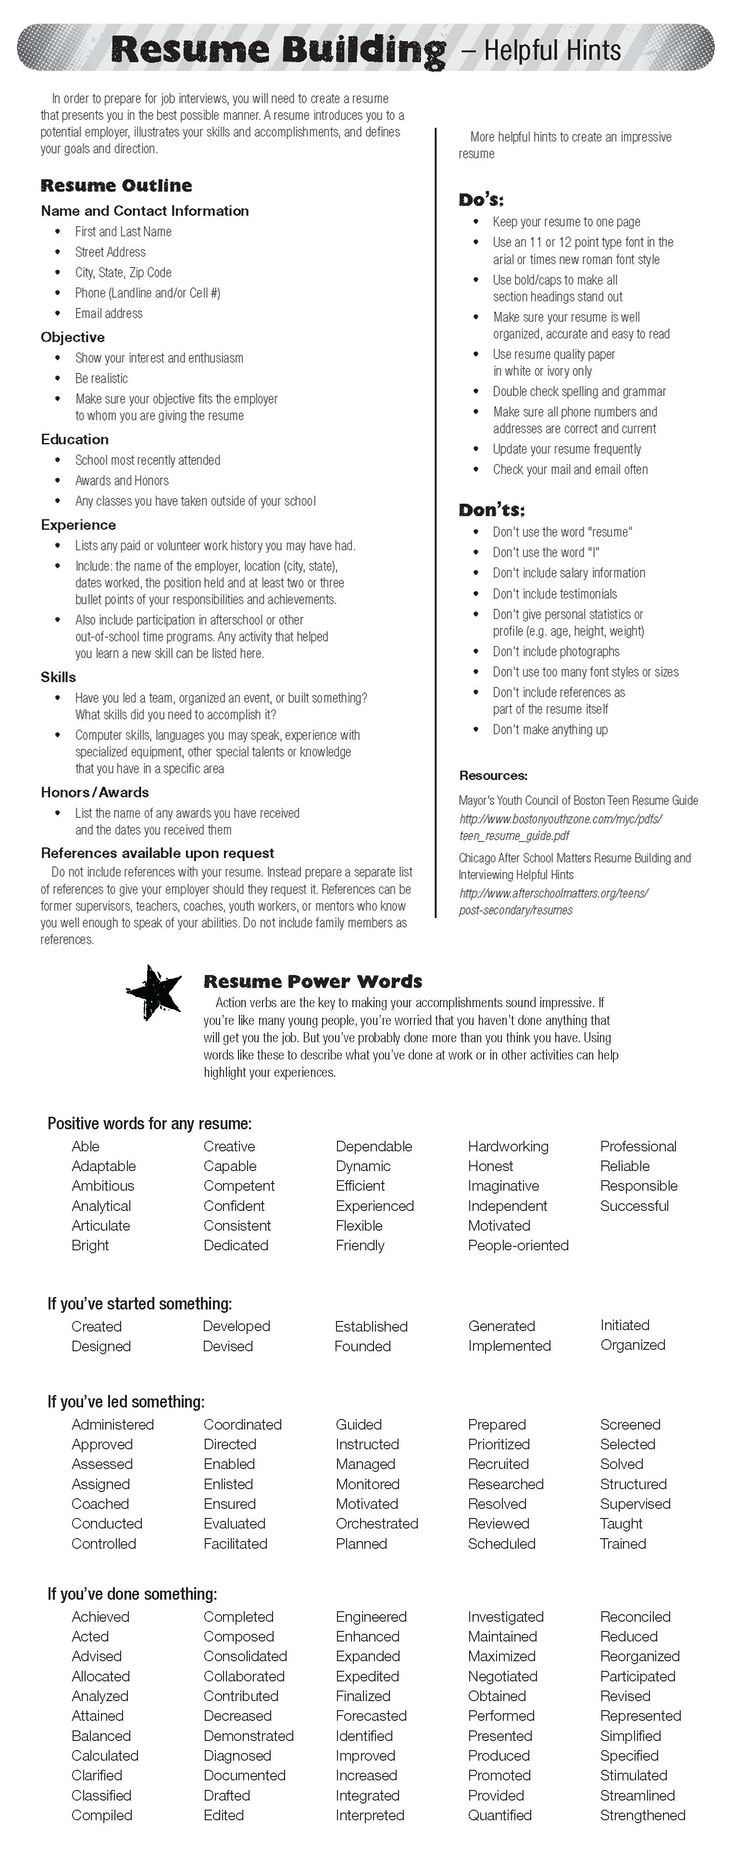 Opposenewapstandardsus  Sweet  Ideas About Resume On Pinterest  Cv Format Resume Cv And  With Fair  Ideas About Resume On Pinterest  Cv Format Resume Cv And Resume Templates With Cool Resumes For Free Also Examples Of Skills On A Resume In Addition Paramedic Resume And Summary Examples For Resume As Well As Make Me A Resume Additionally The Google Resume From Pinterestcom With Opposenewapstandardsus  Fair  Ideas About Resume On Pinterest  Cv Format Resume Cv And  With Cool  Ideas About Resume On Pinterest  Cv Format Resume Cv And Resume Templates And Sweet Resumes For Free Also Examples Of Skills On A Resume In Addition Paramedic Resume From Pinterestcom